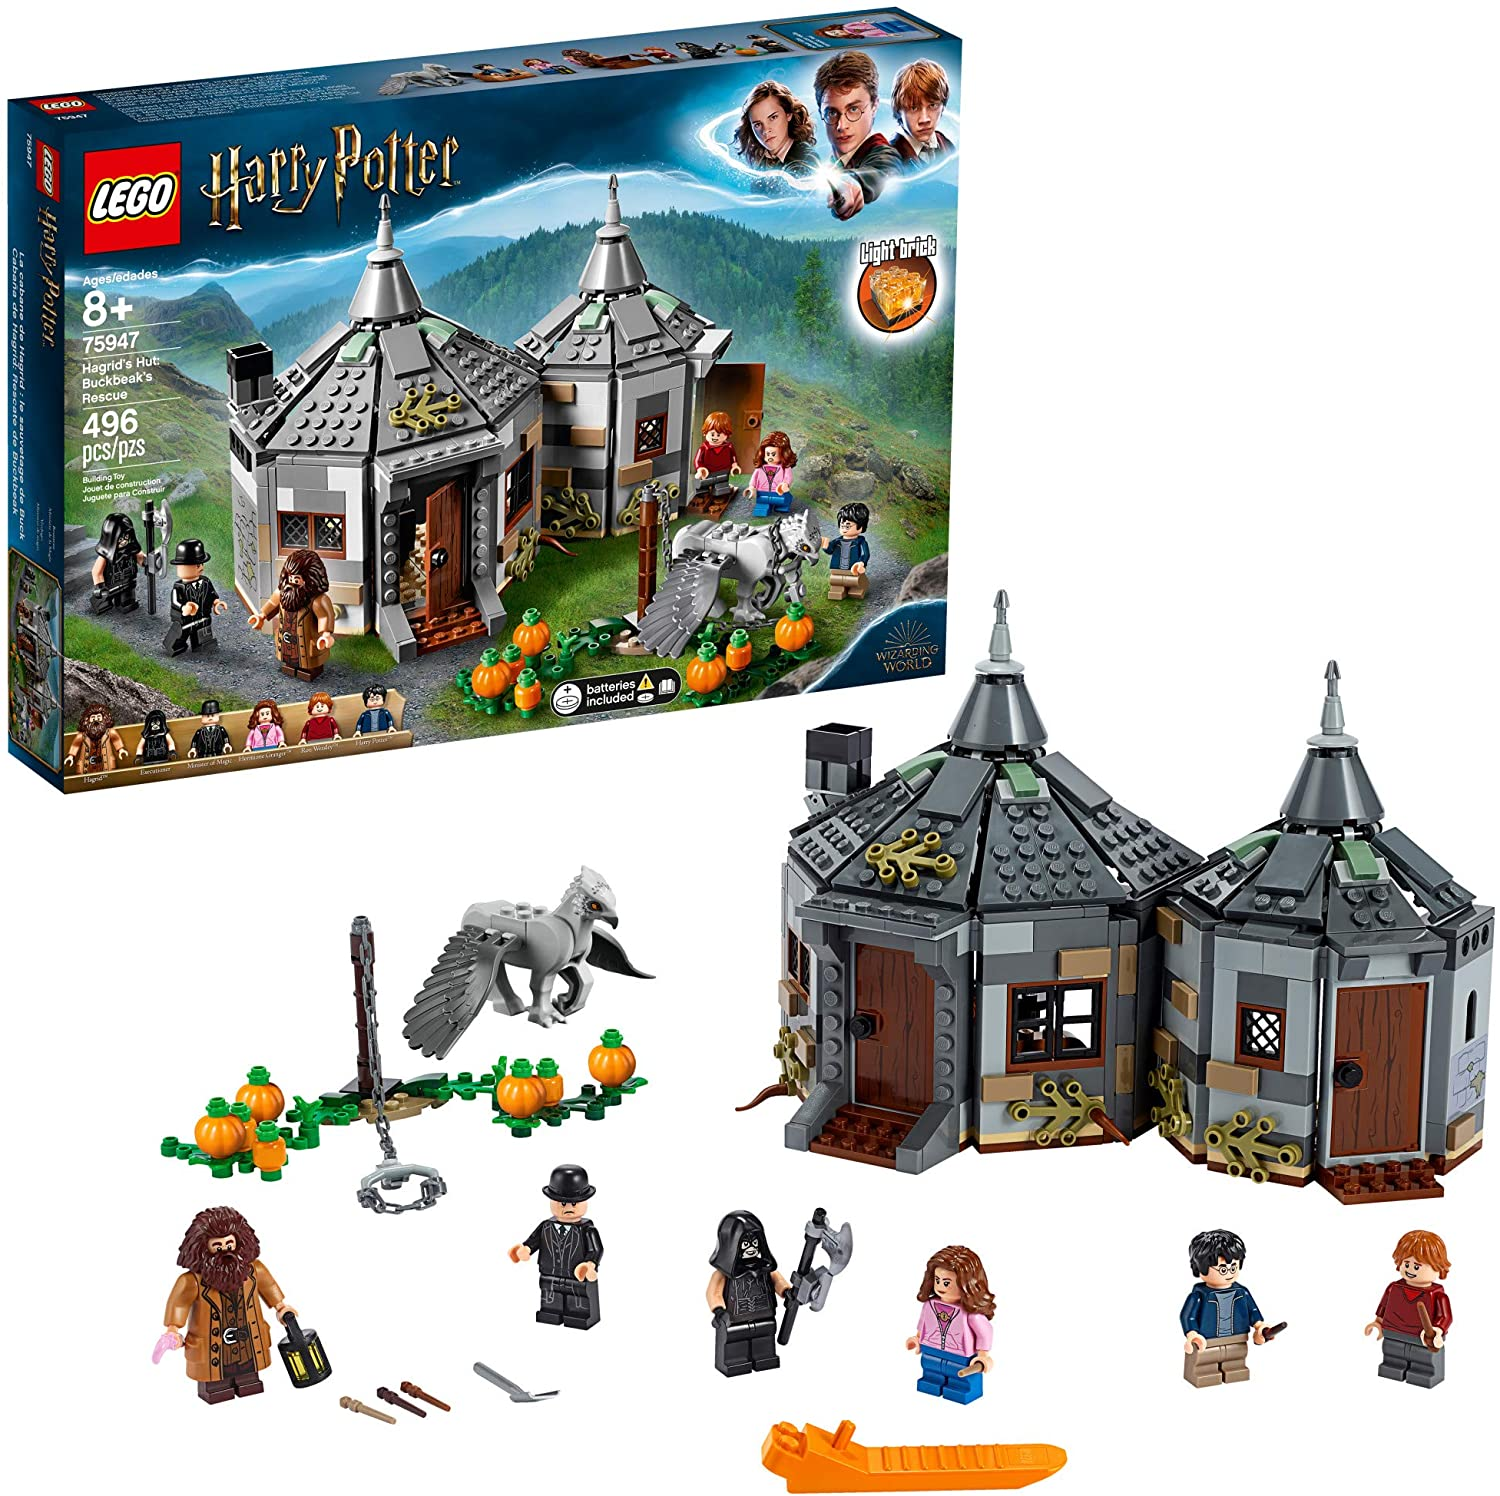 LEGO Harry Potter Hagrid's Hut: Buckbeak's Rescue 75947 Toy Hut Building Set from The Prisoner of Azkaban Features Buckbeak The Hippogriff Figure (496 Pieces)